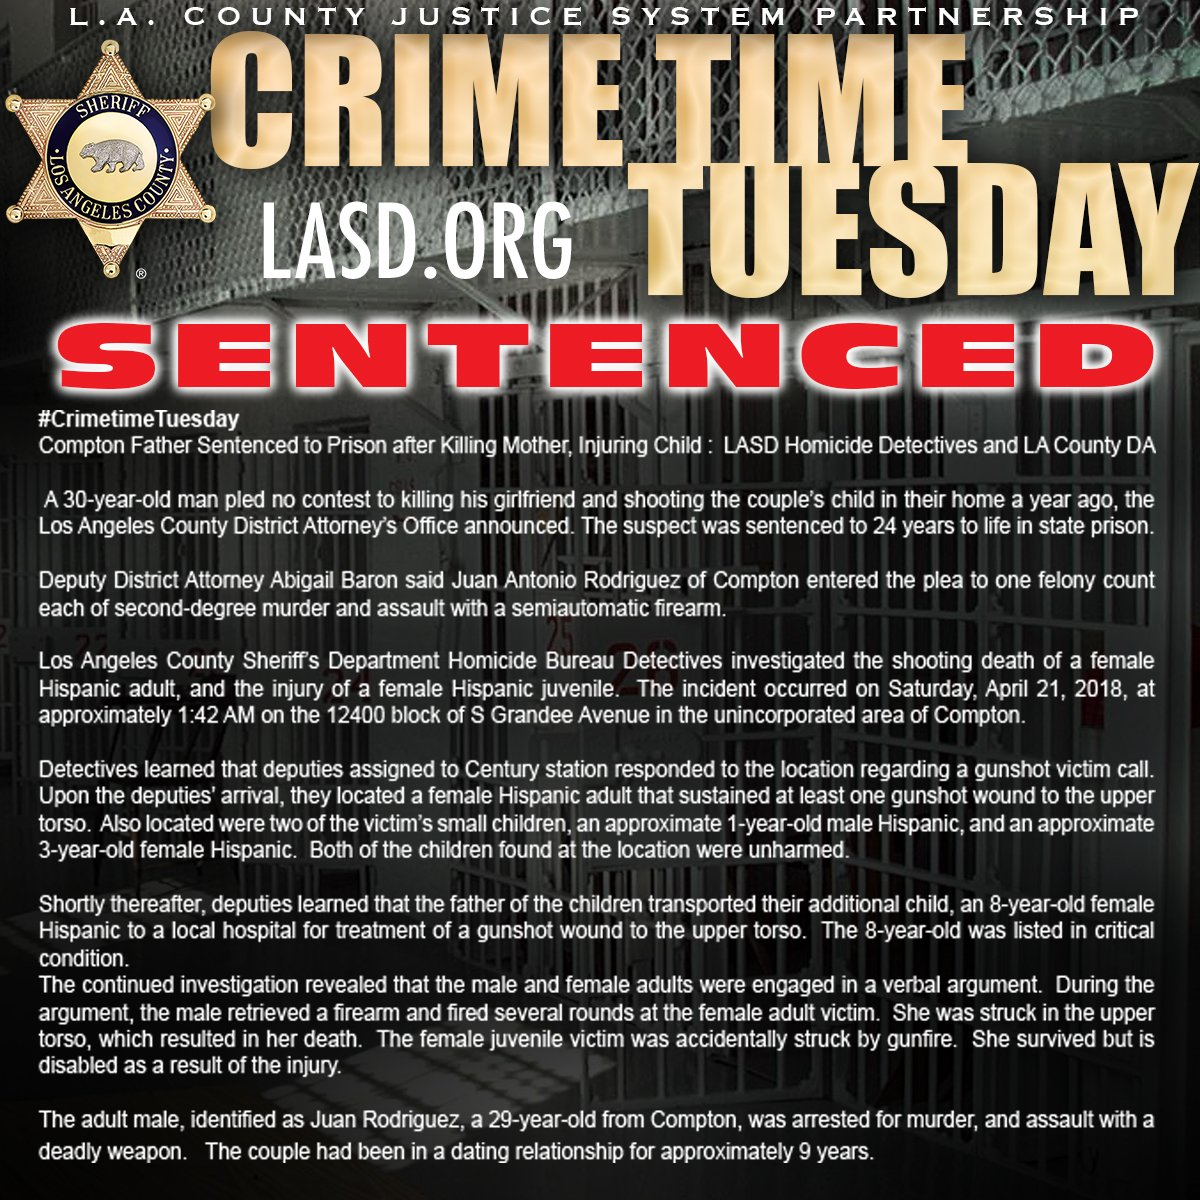 #CrimetimeTuesday #Compton Father Sentenced to Prison after Killing Mother, Injuring Child:  #LASD Homicide Dets & @LADAOffice  https://www.facebook.com/LosAngelesCountySheriffsDepartment/posts/2672407966119433?__tn__=-R…